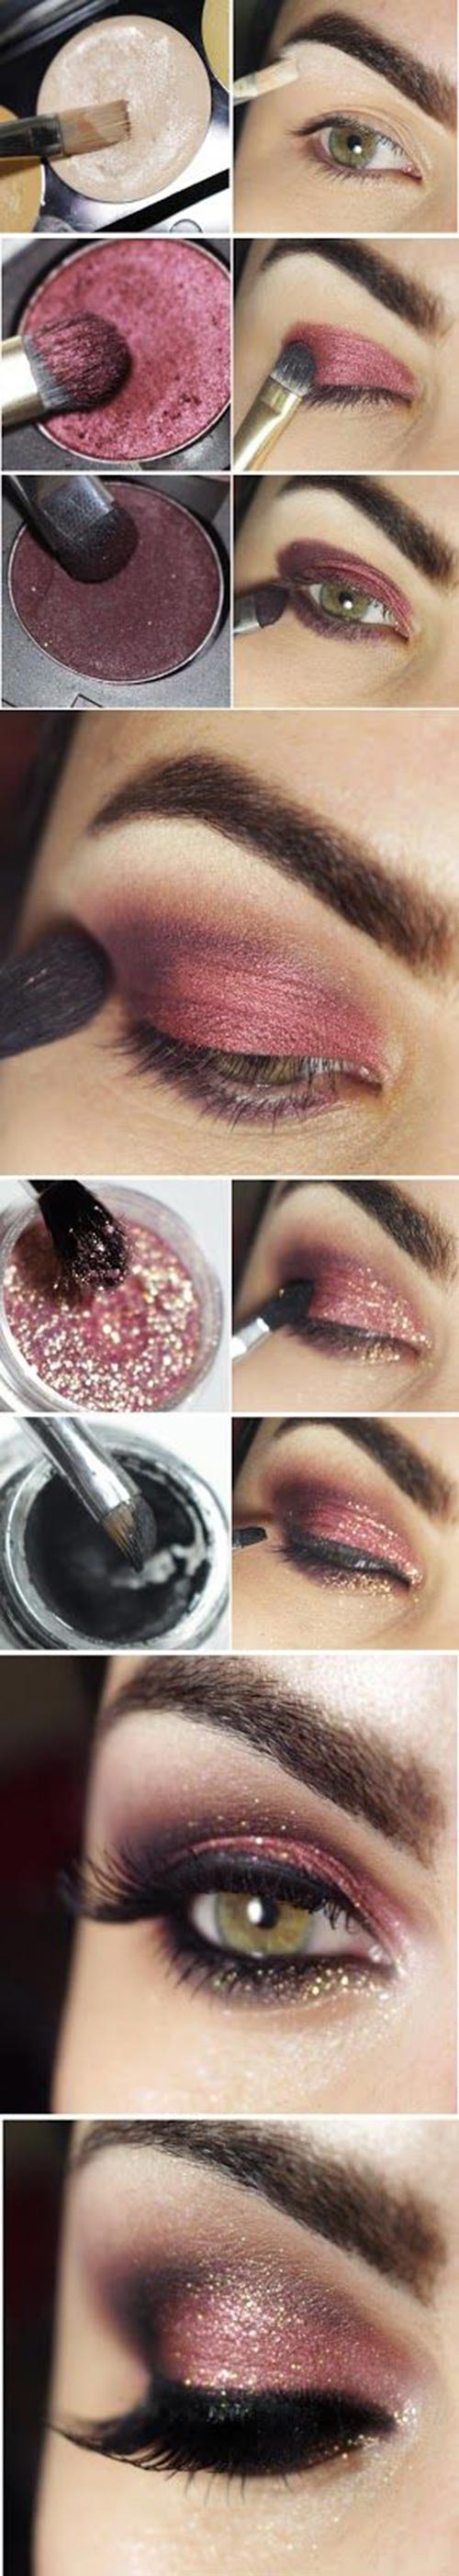 Red hues for gorgeous looks